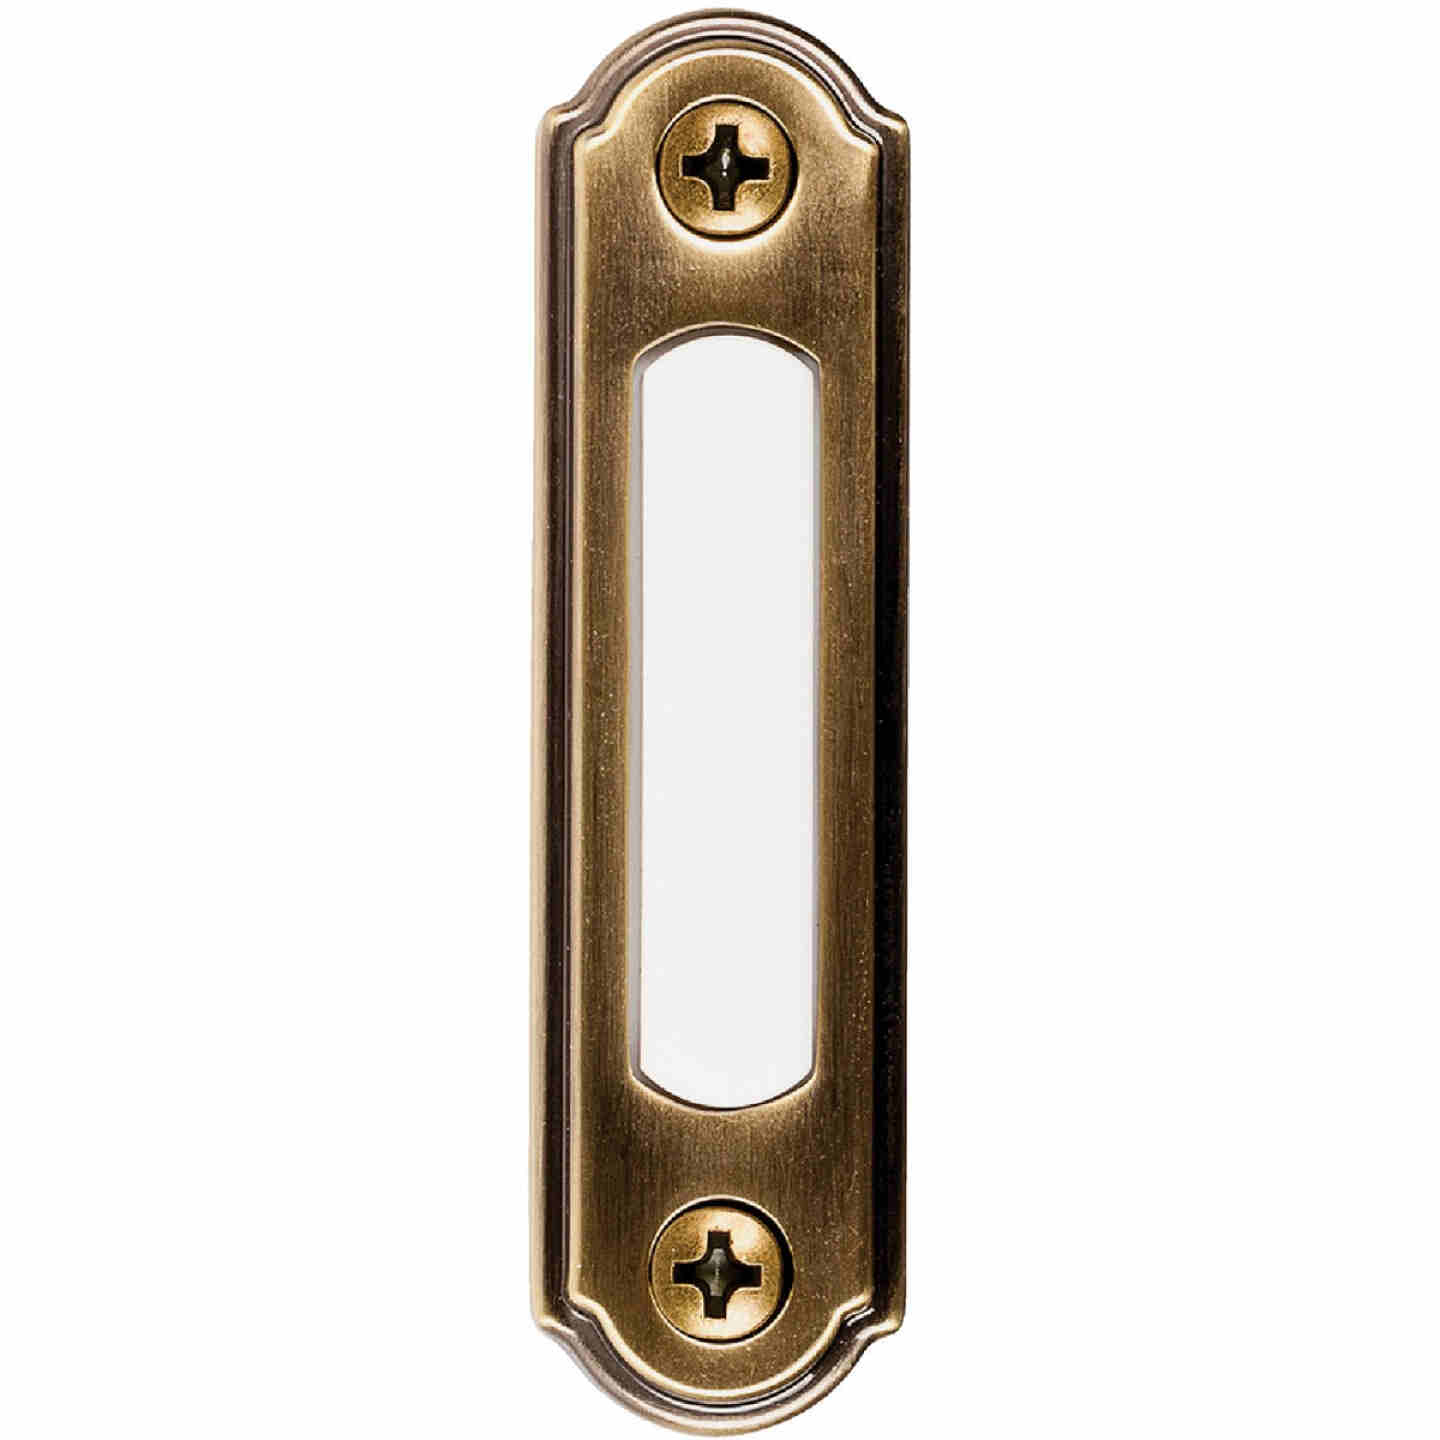 Heath Zenith Wired Antique Brass LED Lighted Doorbell Push-Button Image 1